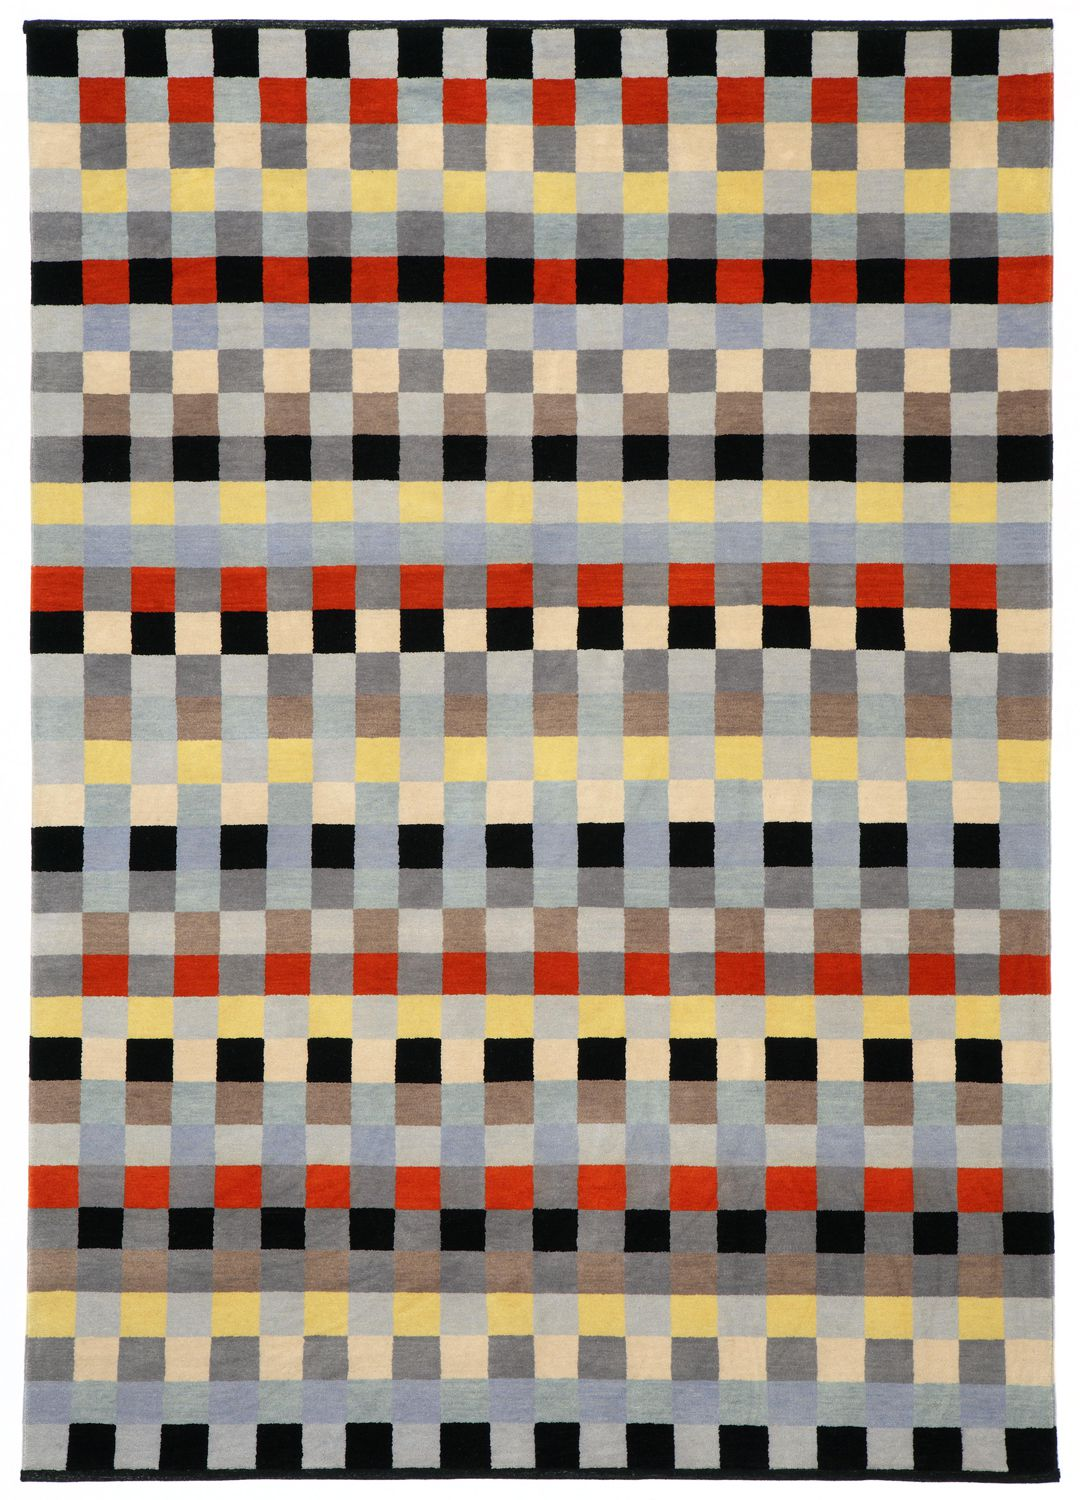 Anni Albers, Carpet for a children's bedroom, 1923 Wolle, Wool, hand-spun and hand-knotted. Re-weaving by Christopher Farr, 2014. | Institut für Auslandsbeziehungen